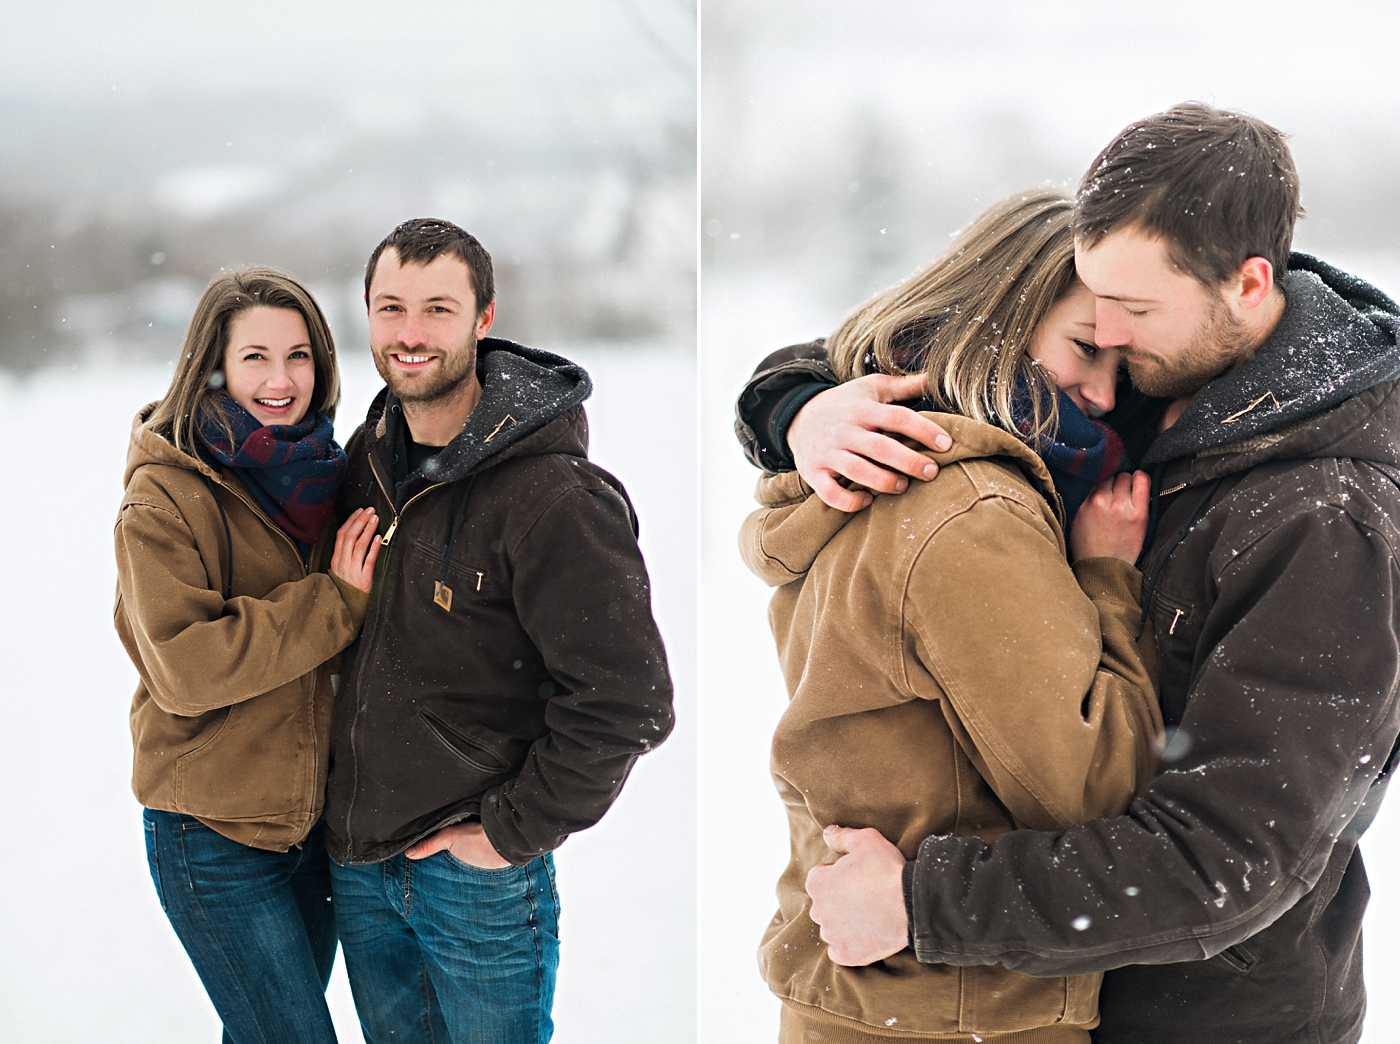 Candace-Berry-Photography-Halifax-Wedding-Photographer-Valley-Engagement_Emily&Macall07.jpeg